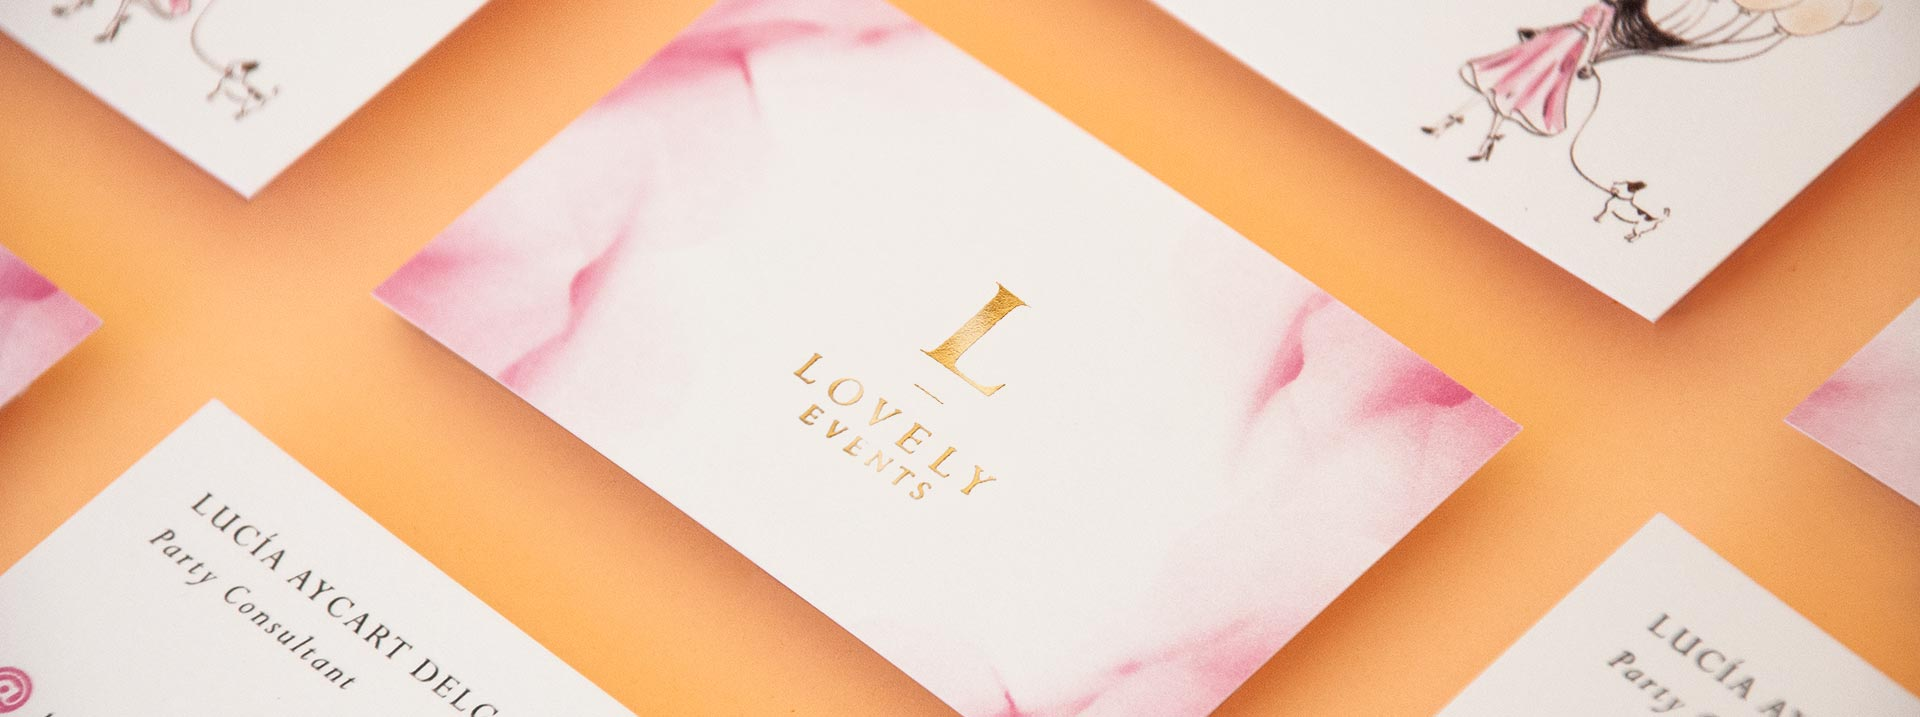 giset design lovely events logo y tarjetas de visita